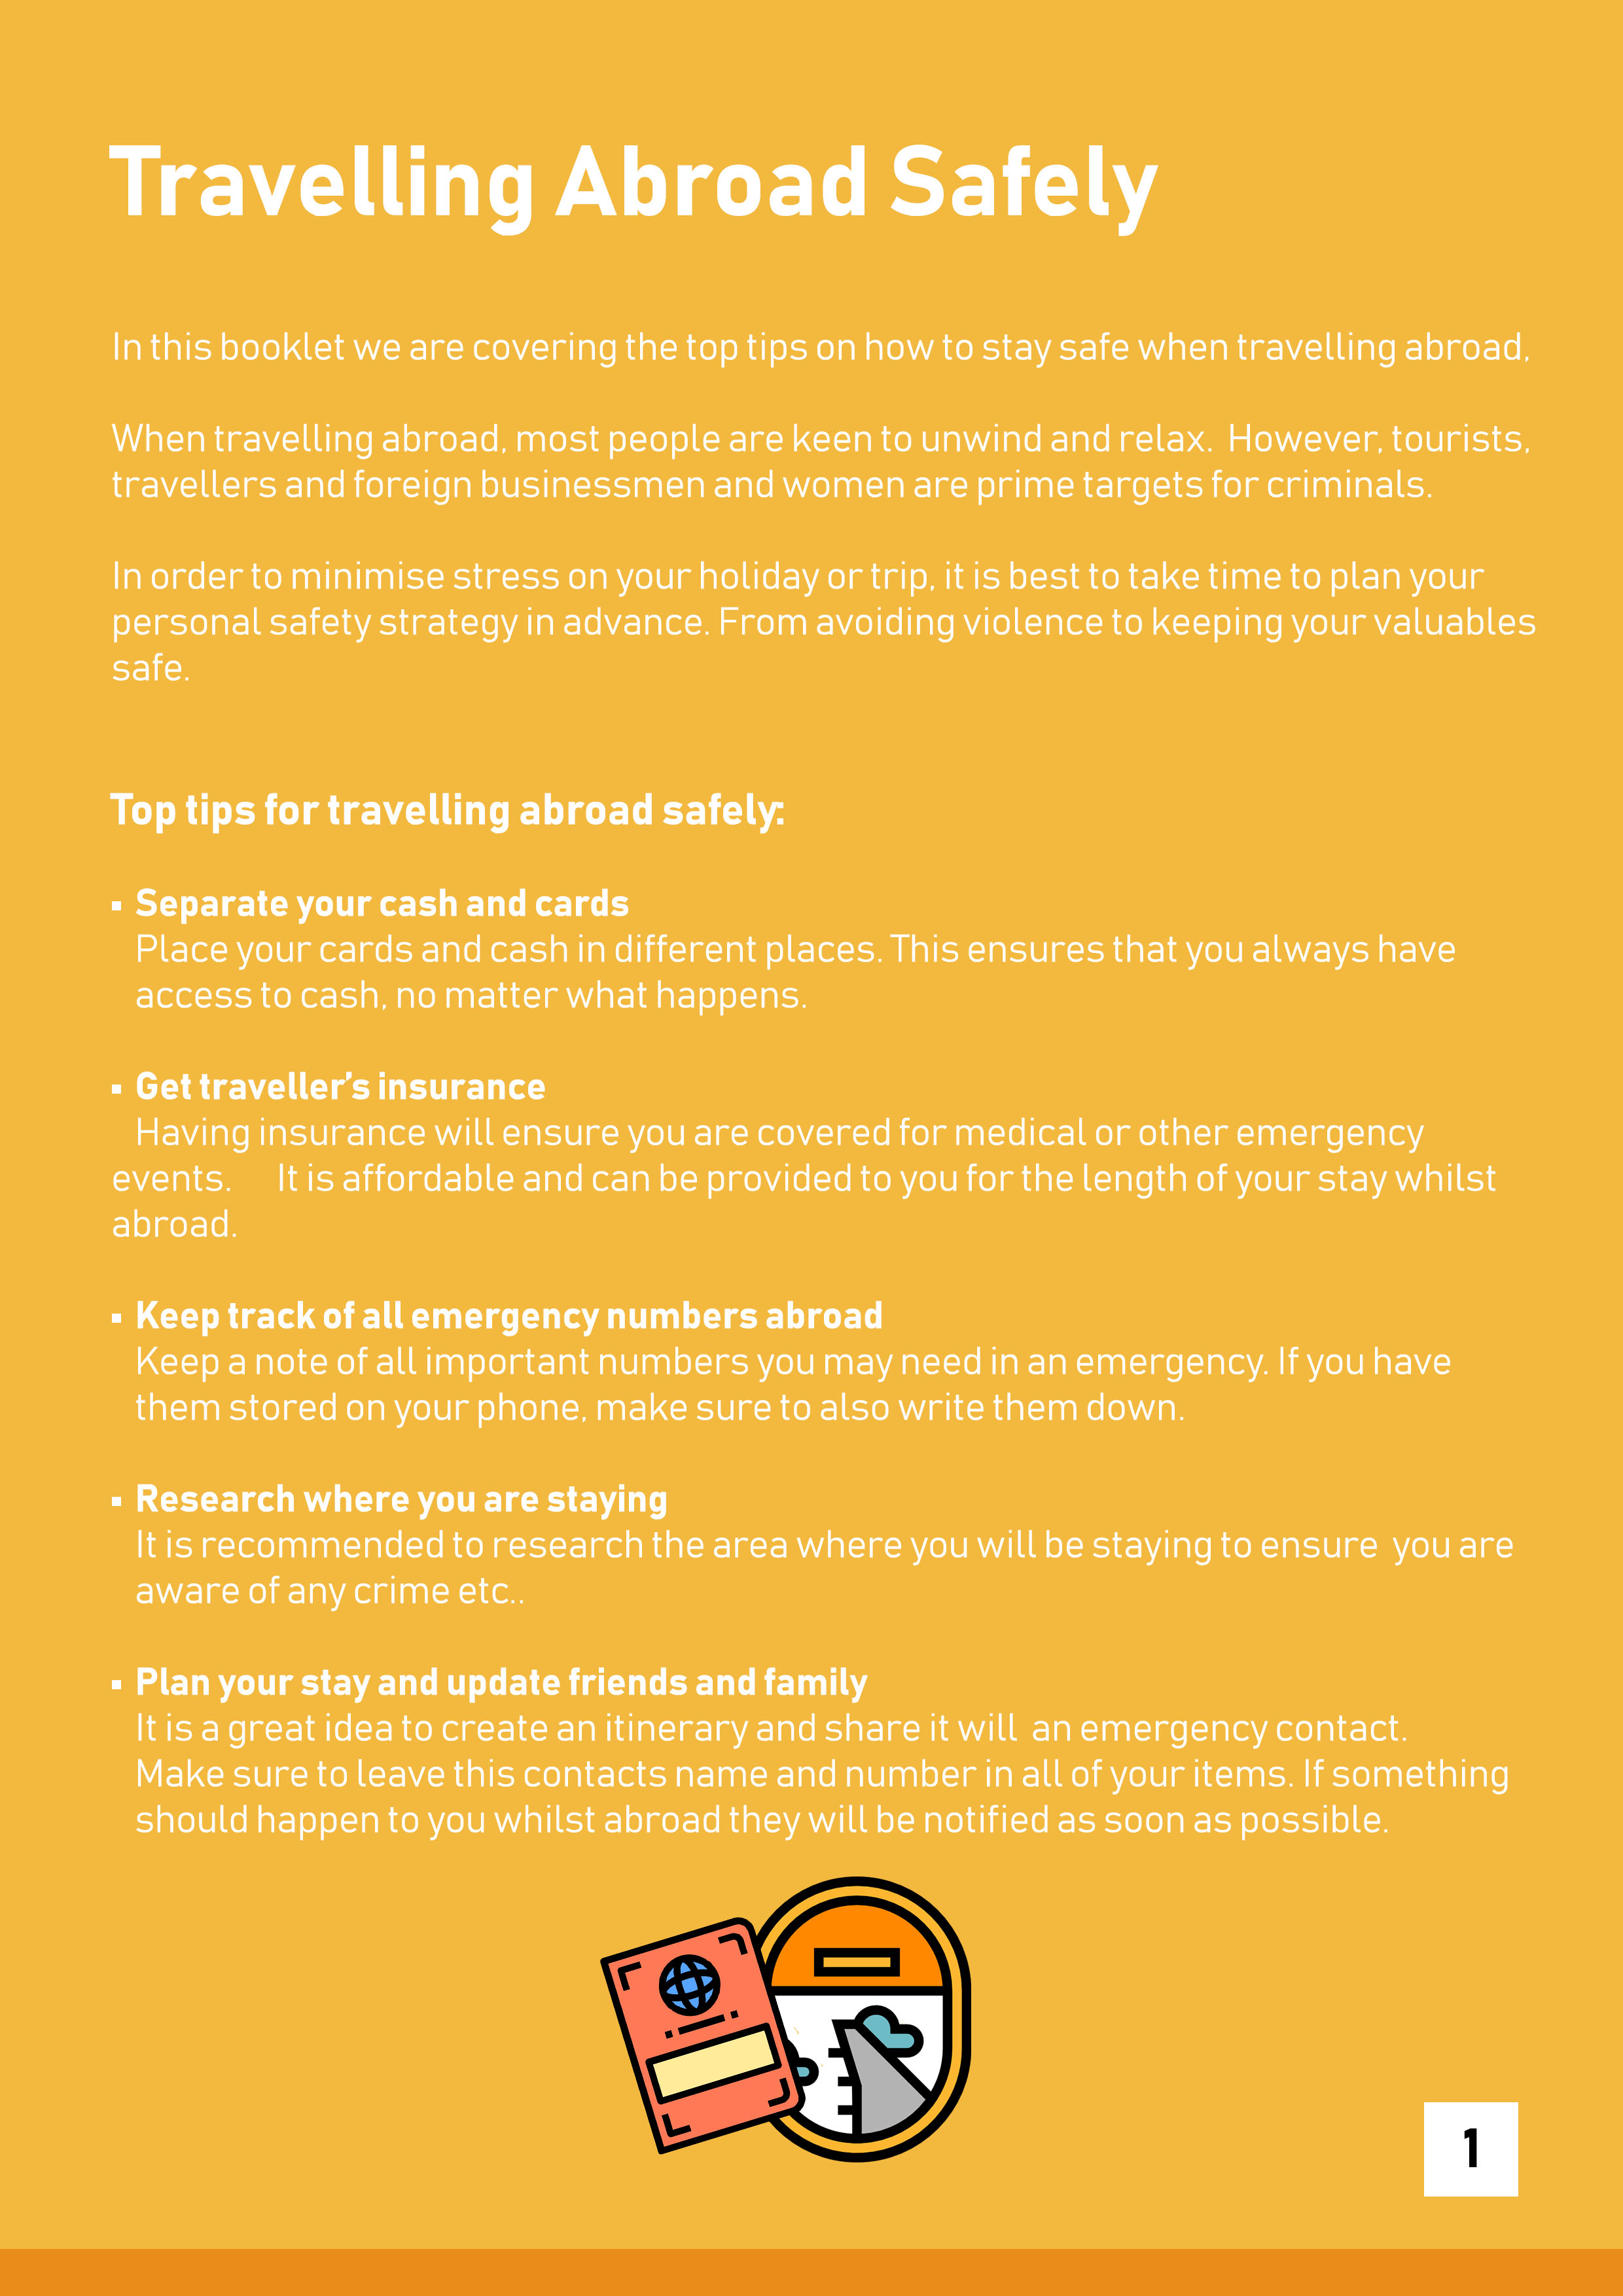 Travelling Abroad Safely - Pg2.jpg